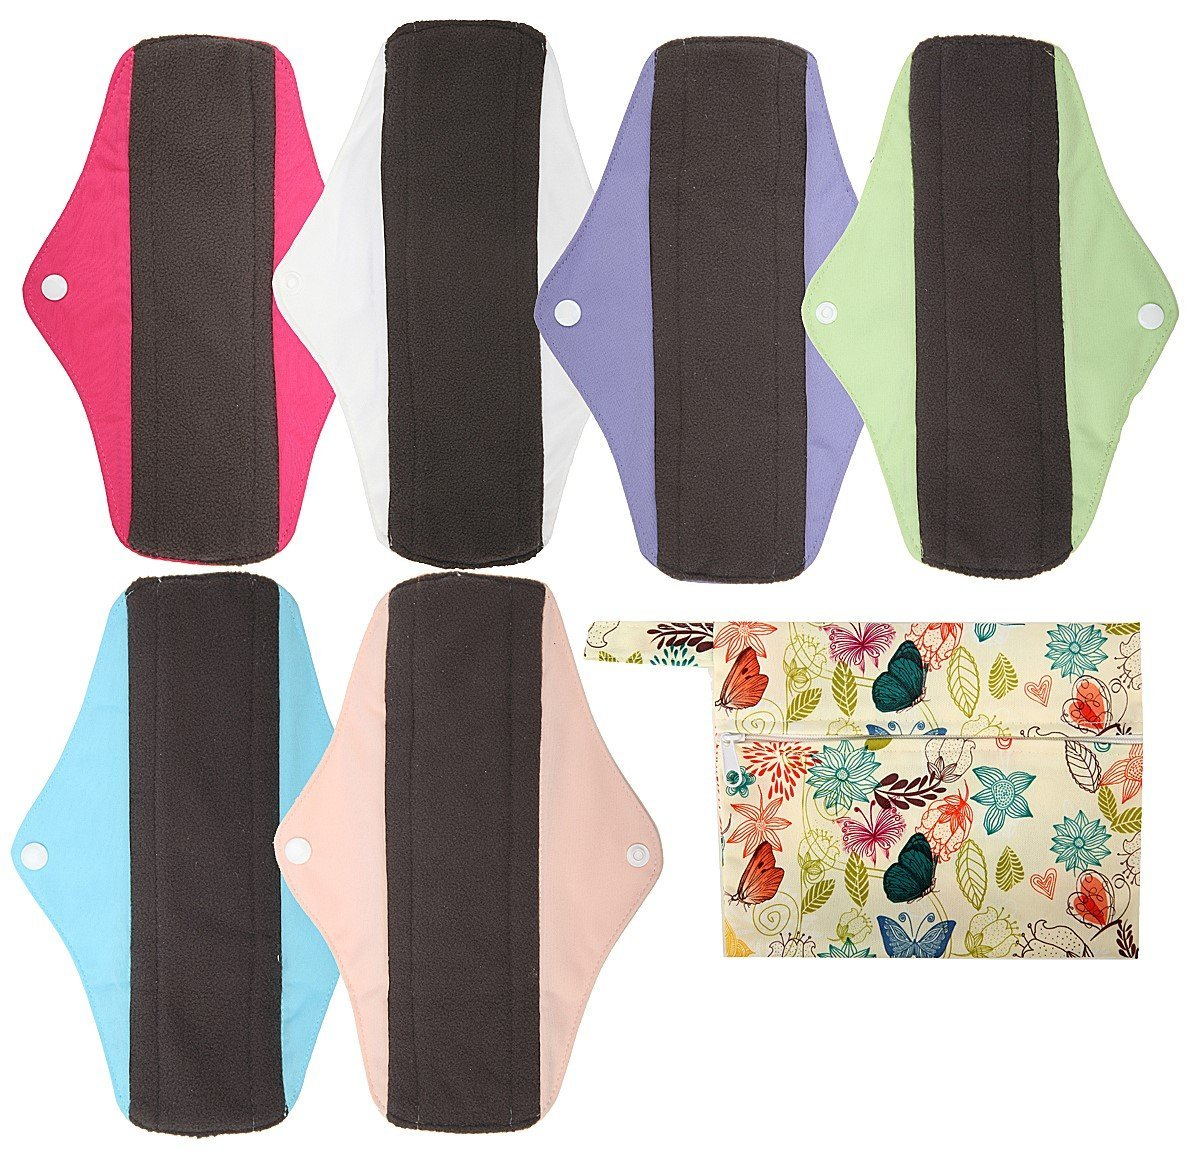 what are the best reusable menstrual pads